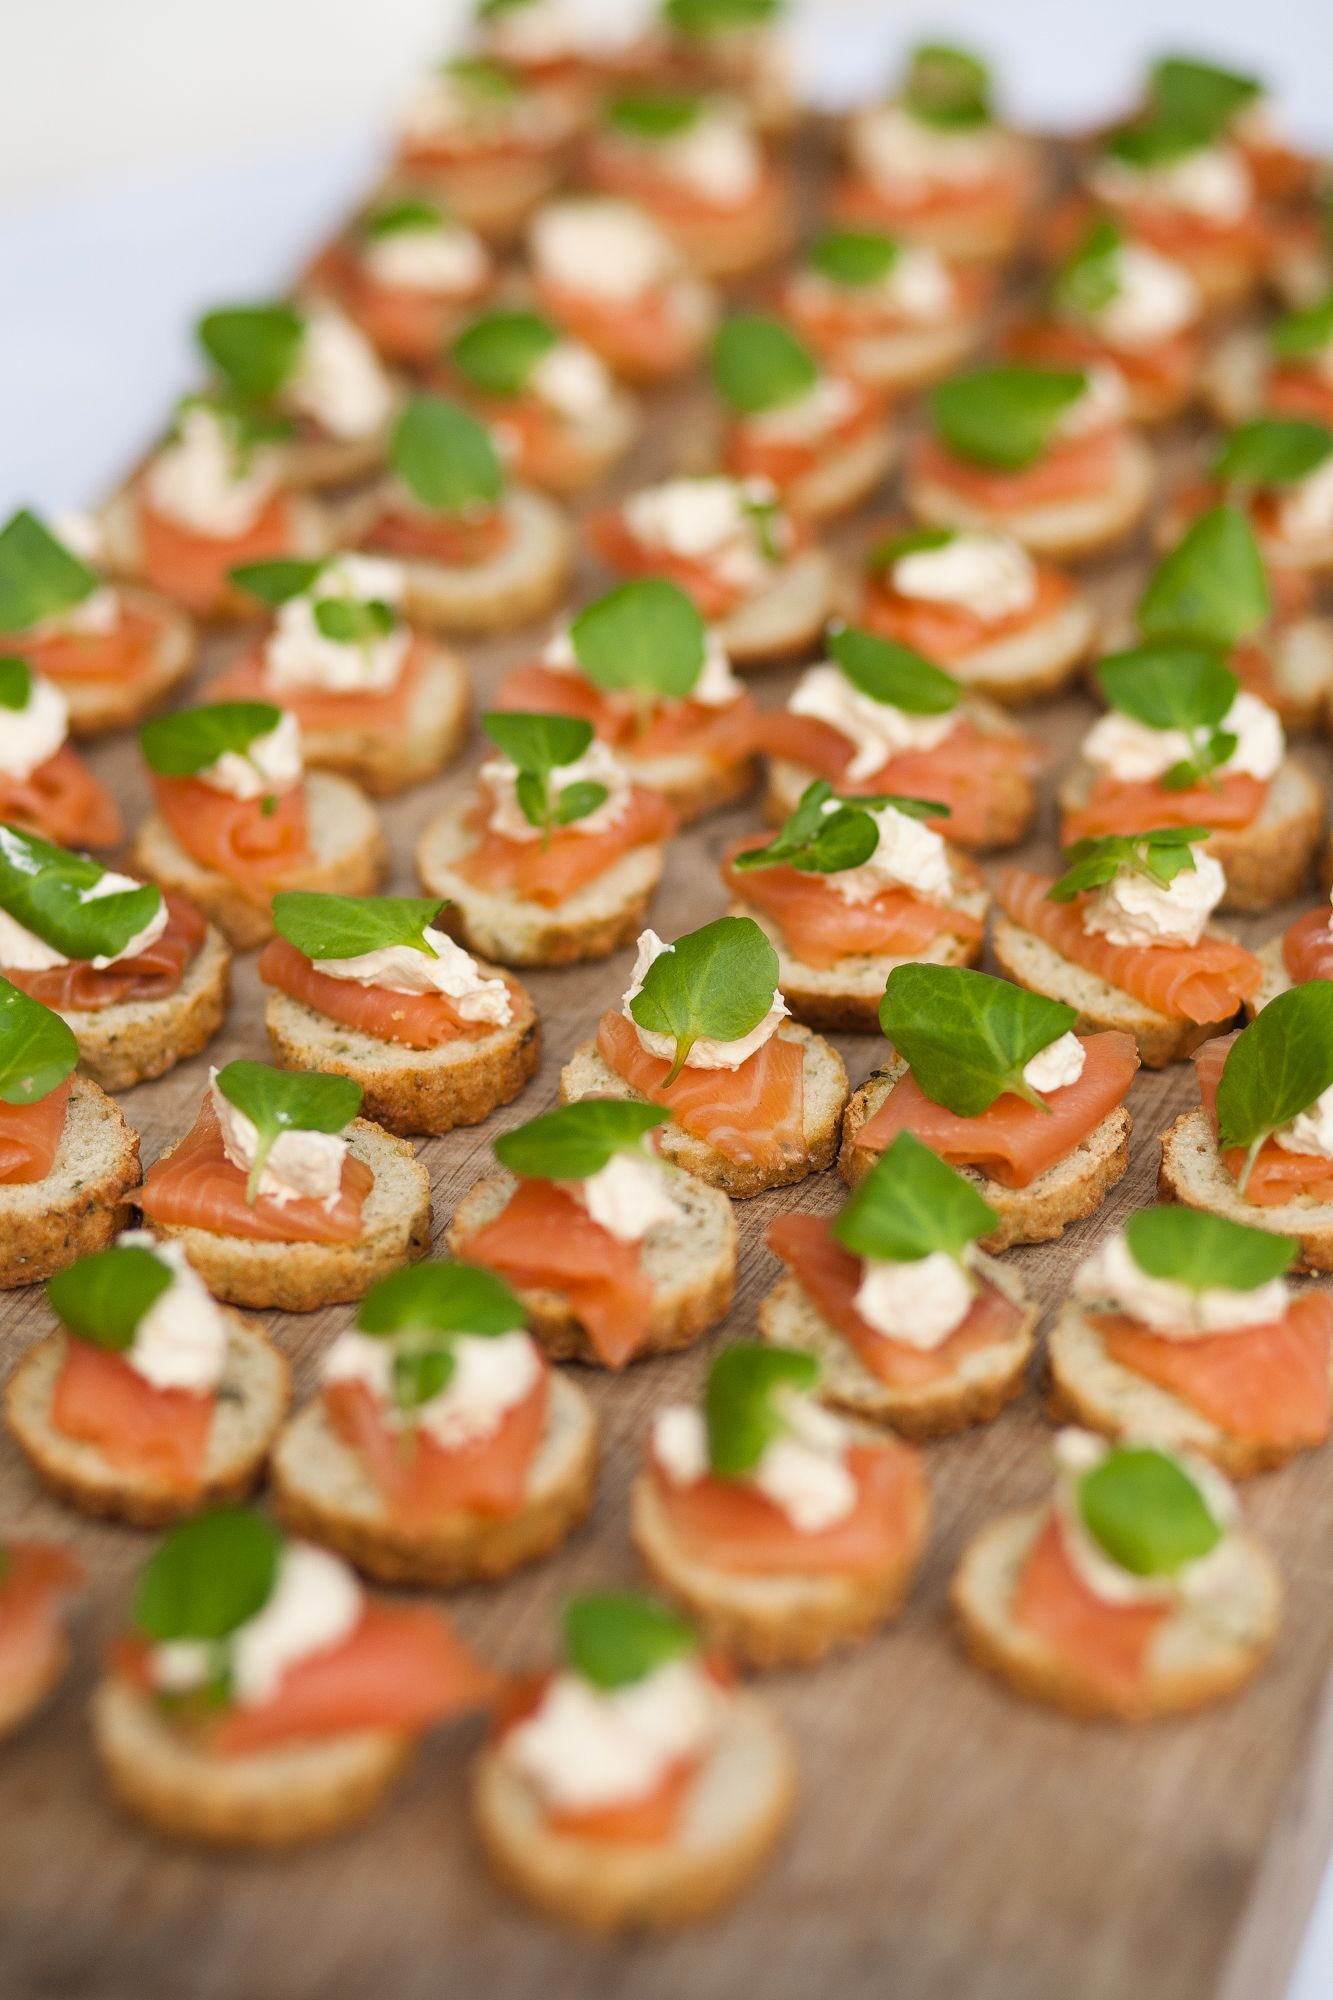 Canapés Show We Offer A Wide Selection Of Seasonal Canapes Which Utilise Local